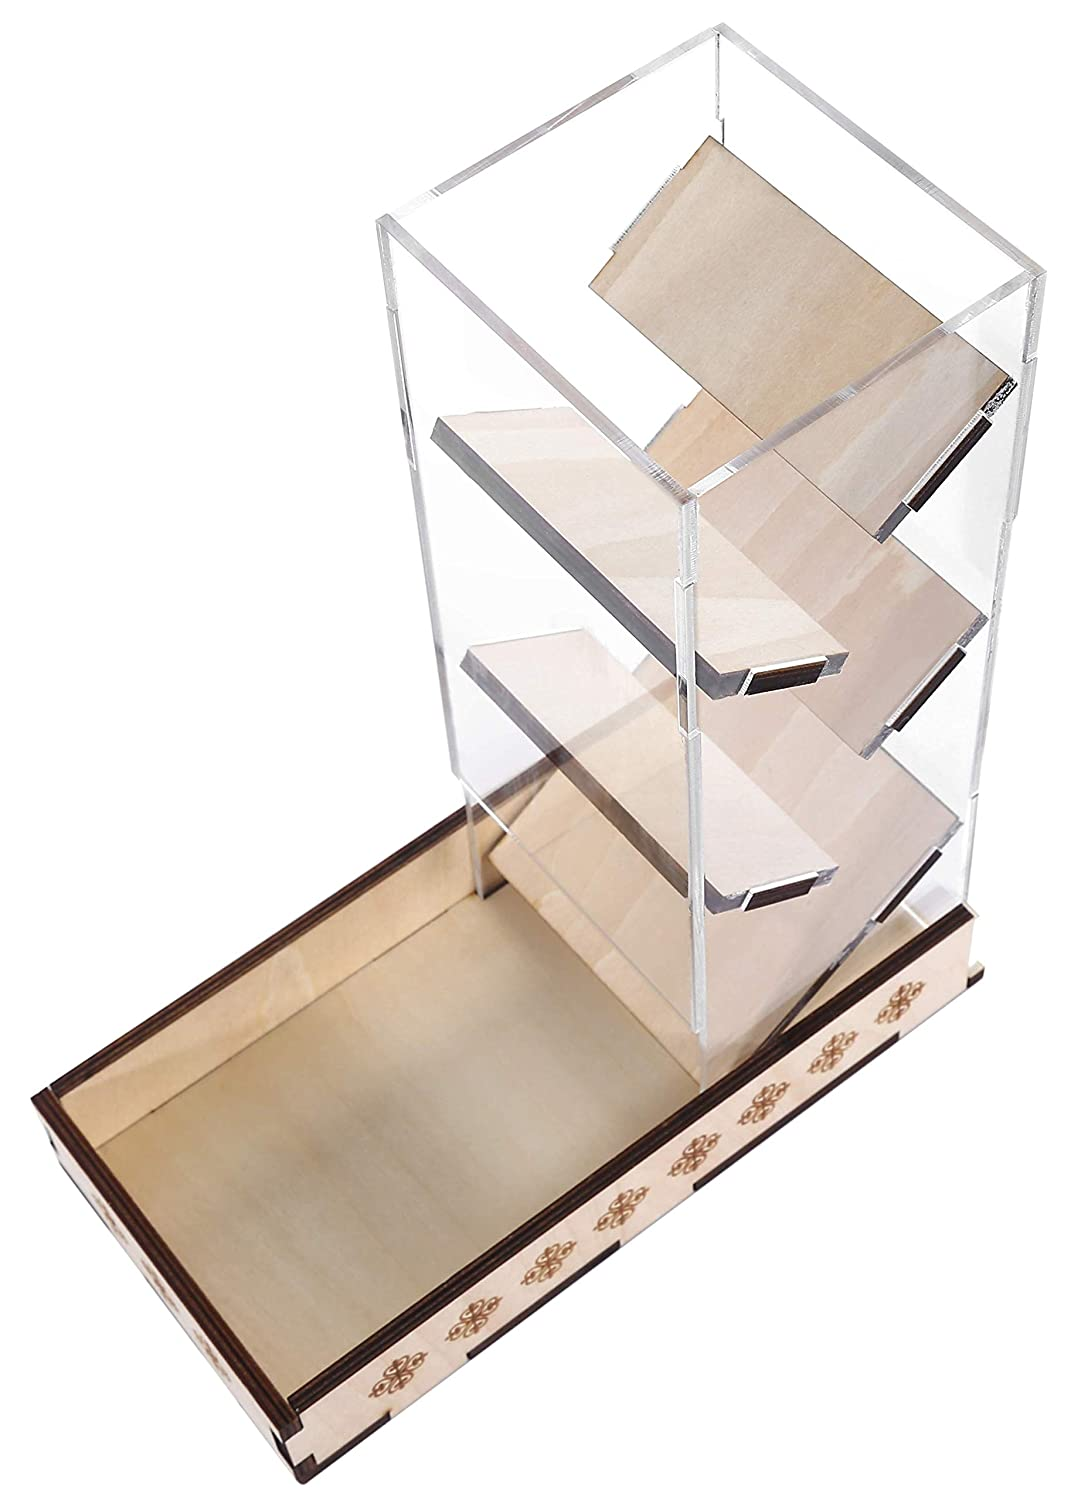 Dice Tower /& Tray Box Perfect for Gamers and Dice Tabletop Games RPGs Board Games